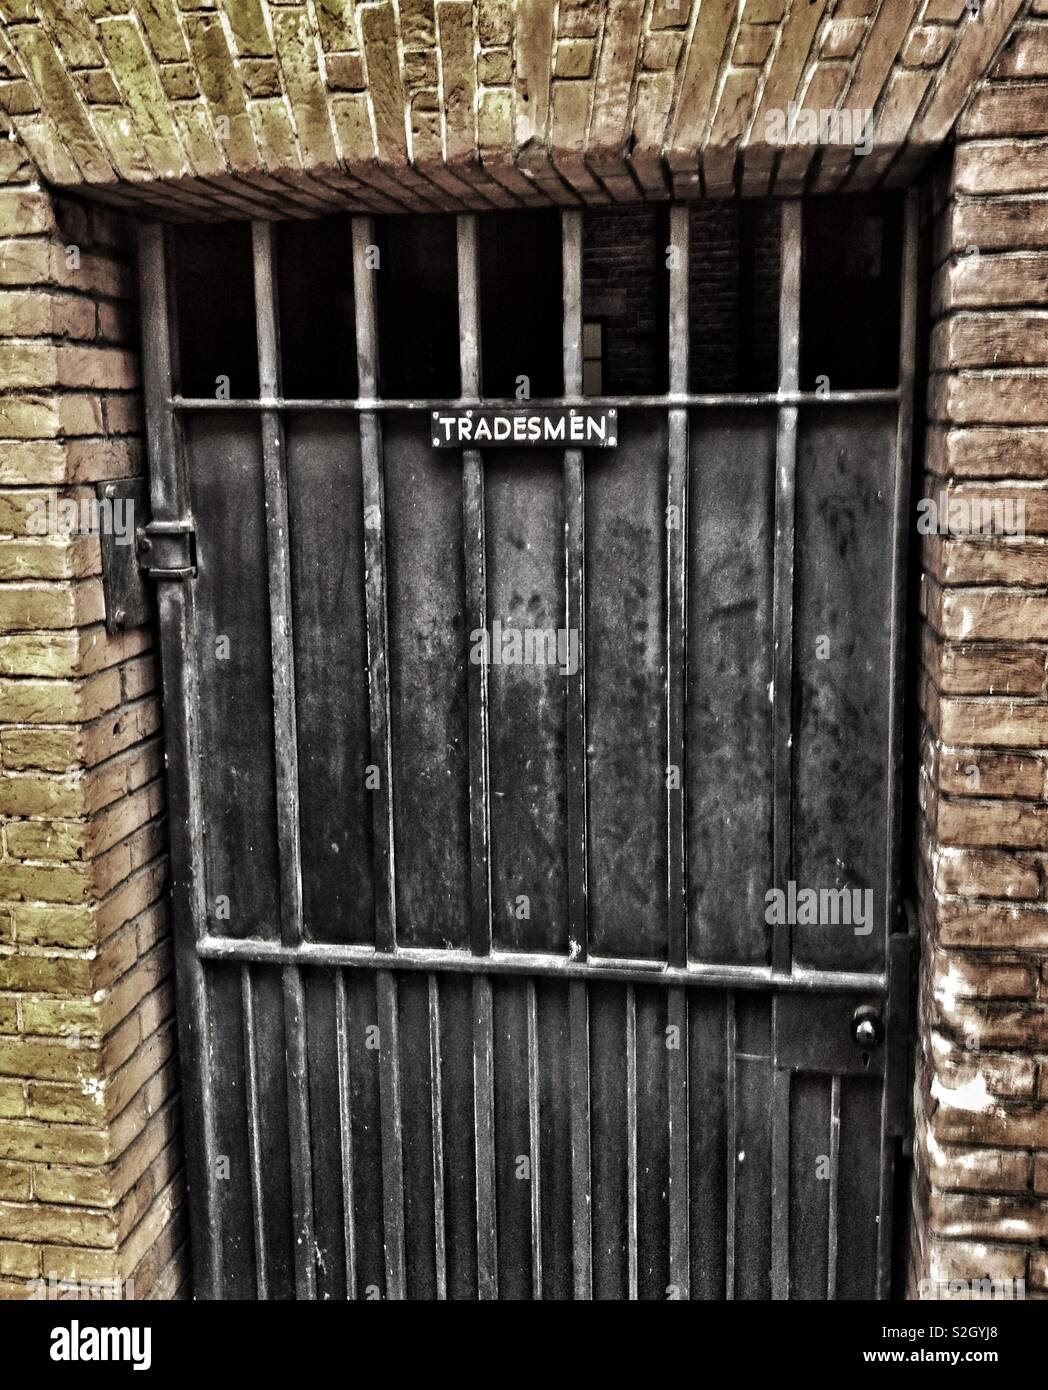 An old fashioned tradesmen entrance sign on the gate of a house in central London, England - Stock Image